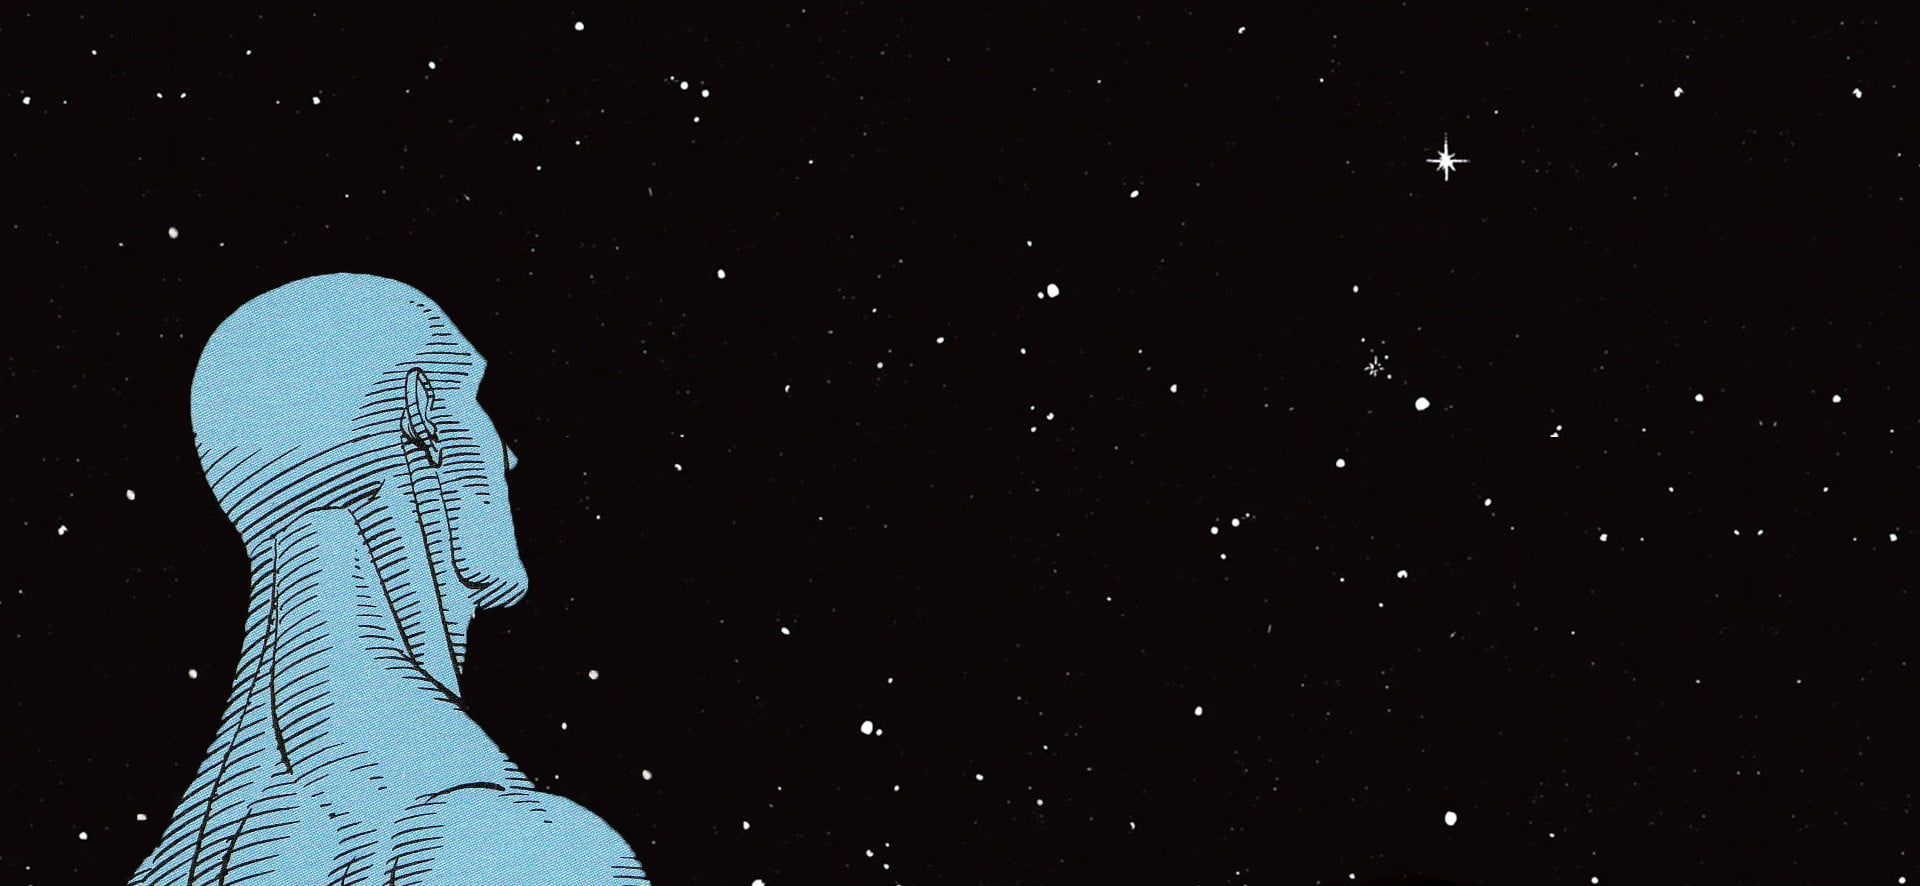 Human Illustration Dr Manhattan Watchmen Dc Comics 1080p Wallpaper Hdwallpaper Desktop 2020